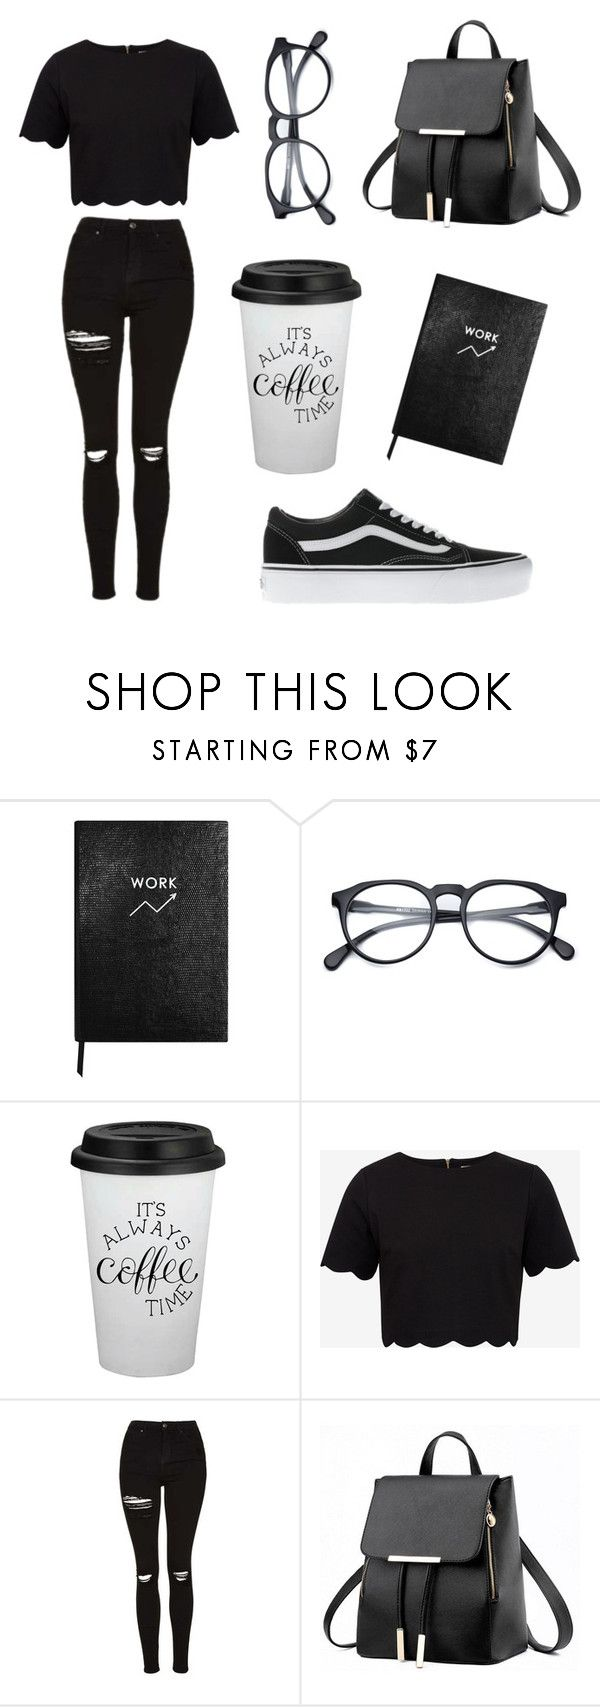 """""""Back to School contest entry"""" by darkerizzy ❤ liked on Polyvore featuring Sloane Stationery, Ted Baker, Topshop and Vans"""